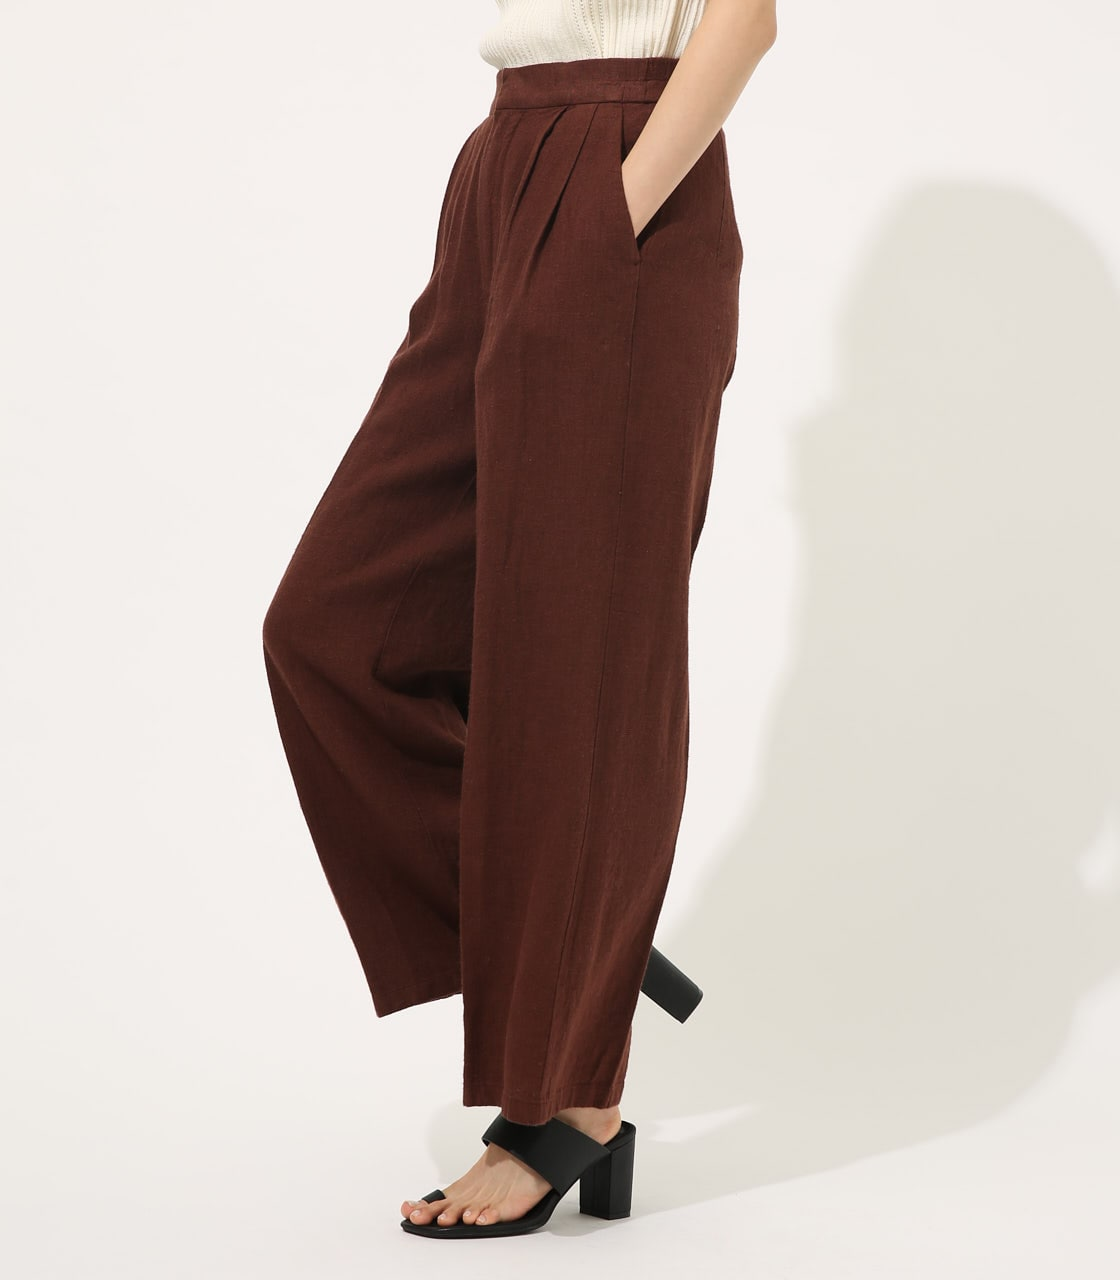 【AZUL BY MOUSSY】COTTON LINEN WIDE PANTS【MOOK50掲載 90131】 詳細画像 BRN 2